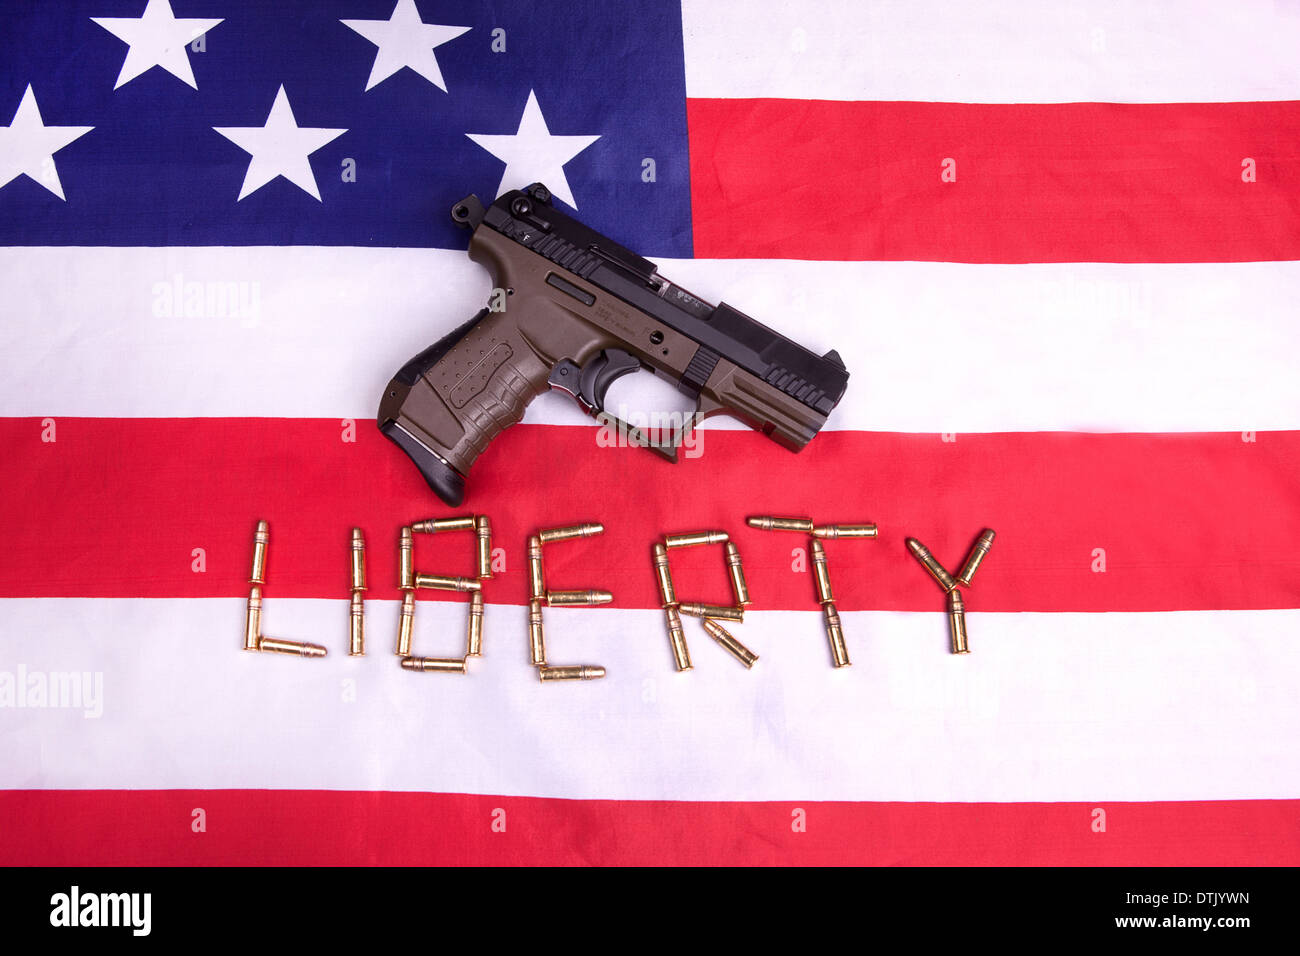 A concept image of a pistol on a US flag and the ammo spelling out the word liberty. - Stock Image